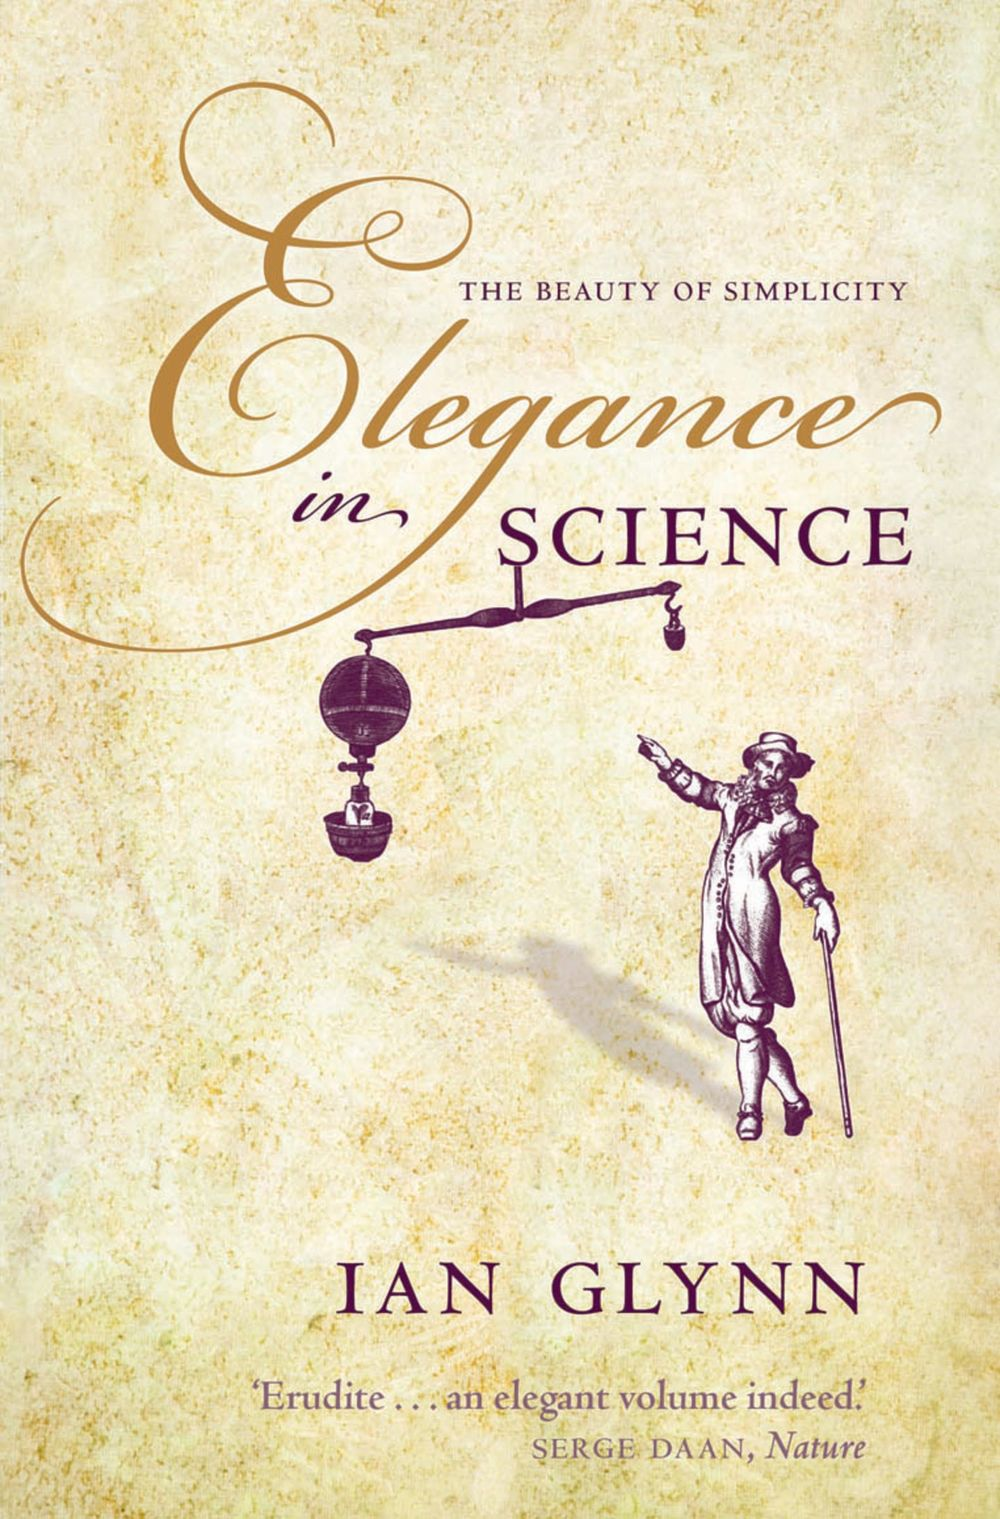 Ian Glynn - Beauty in Science